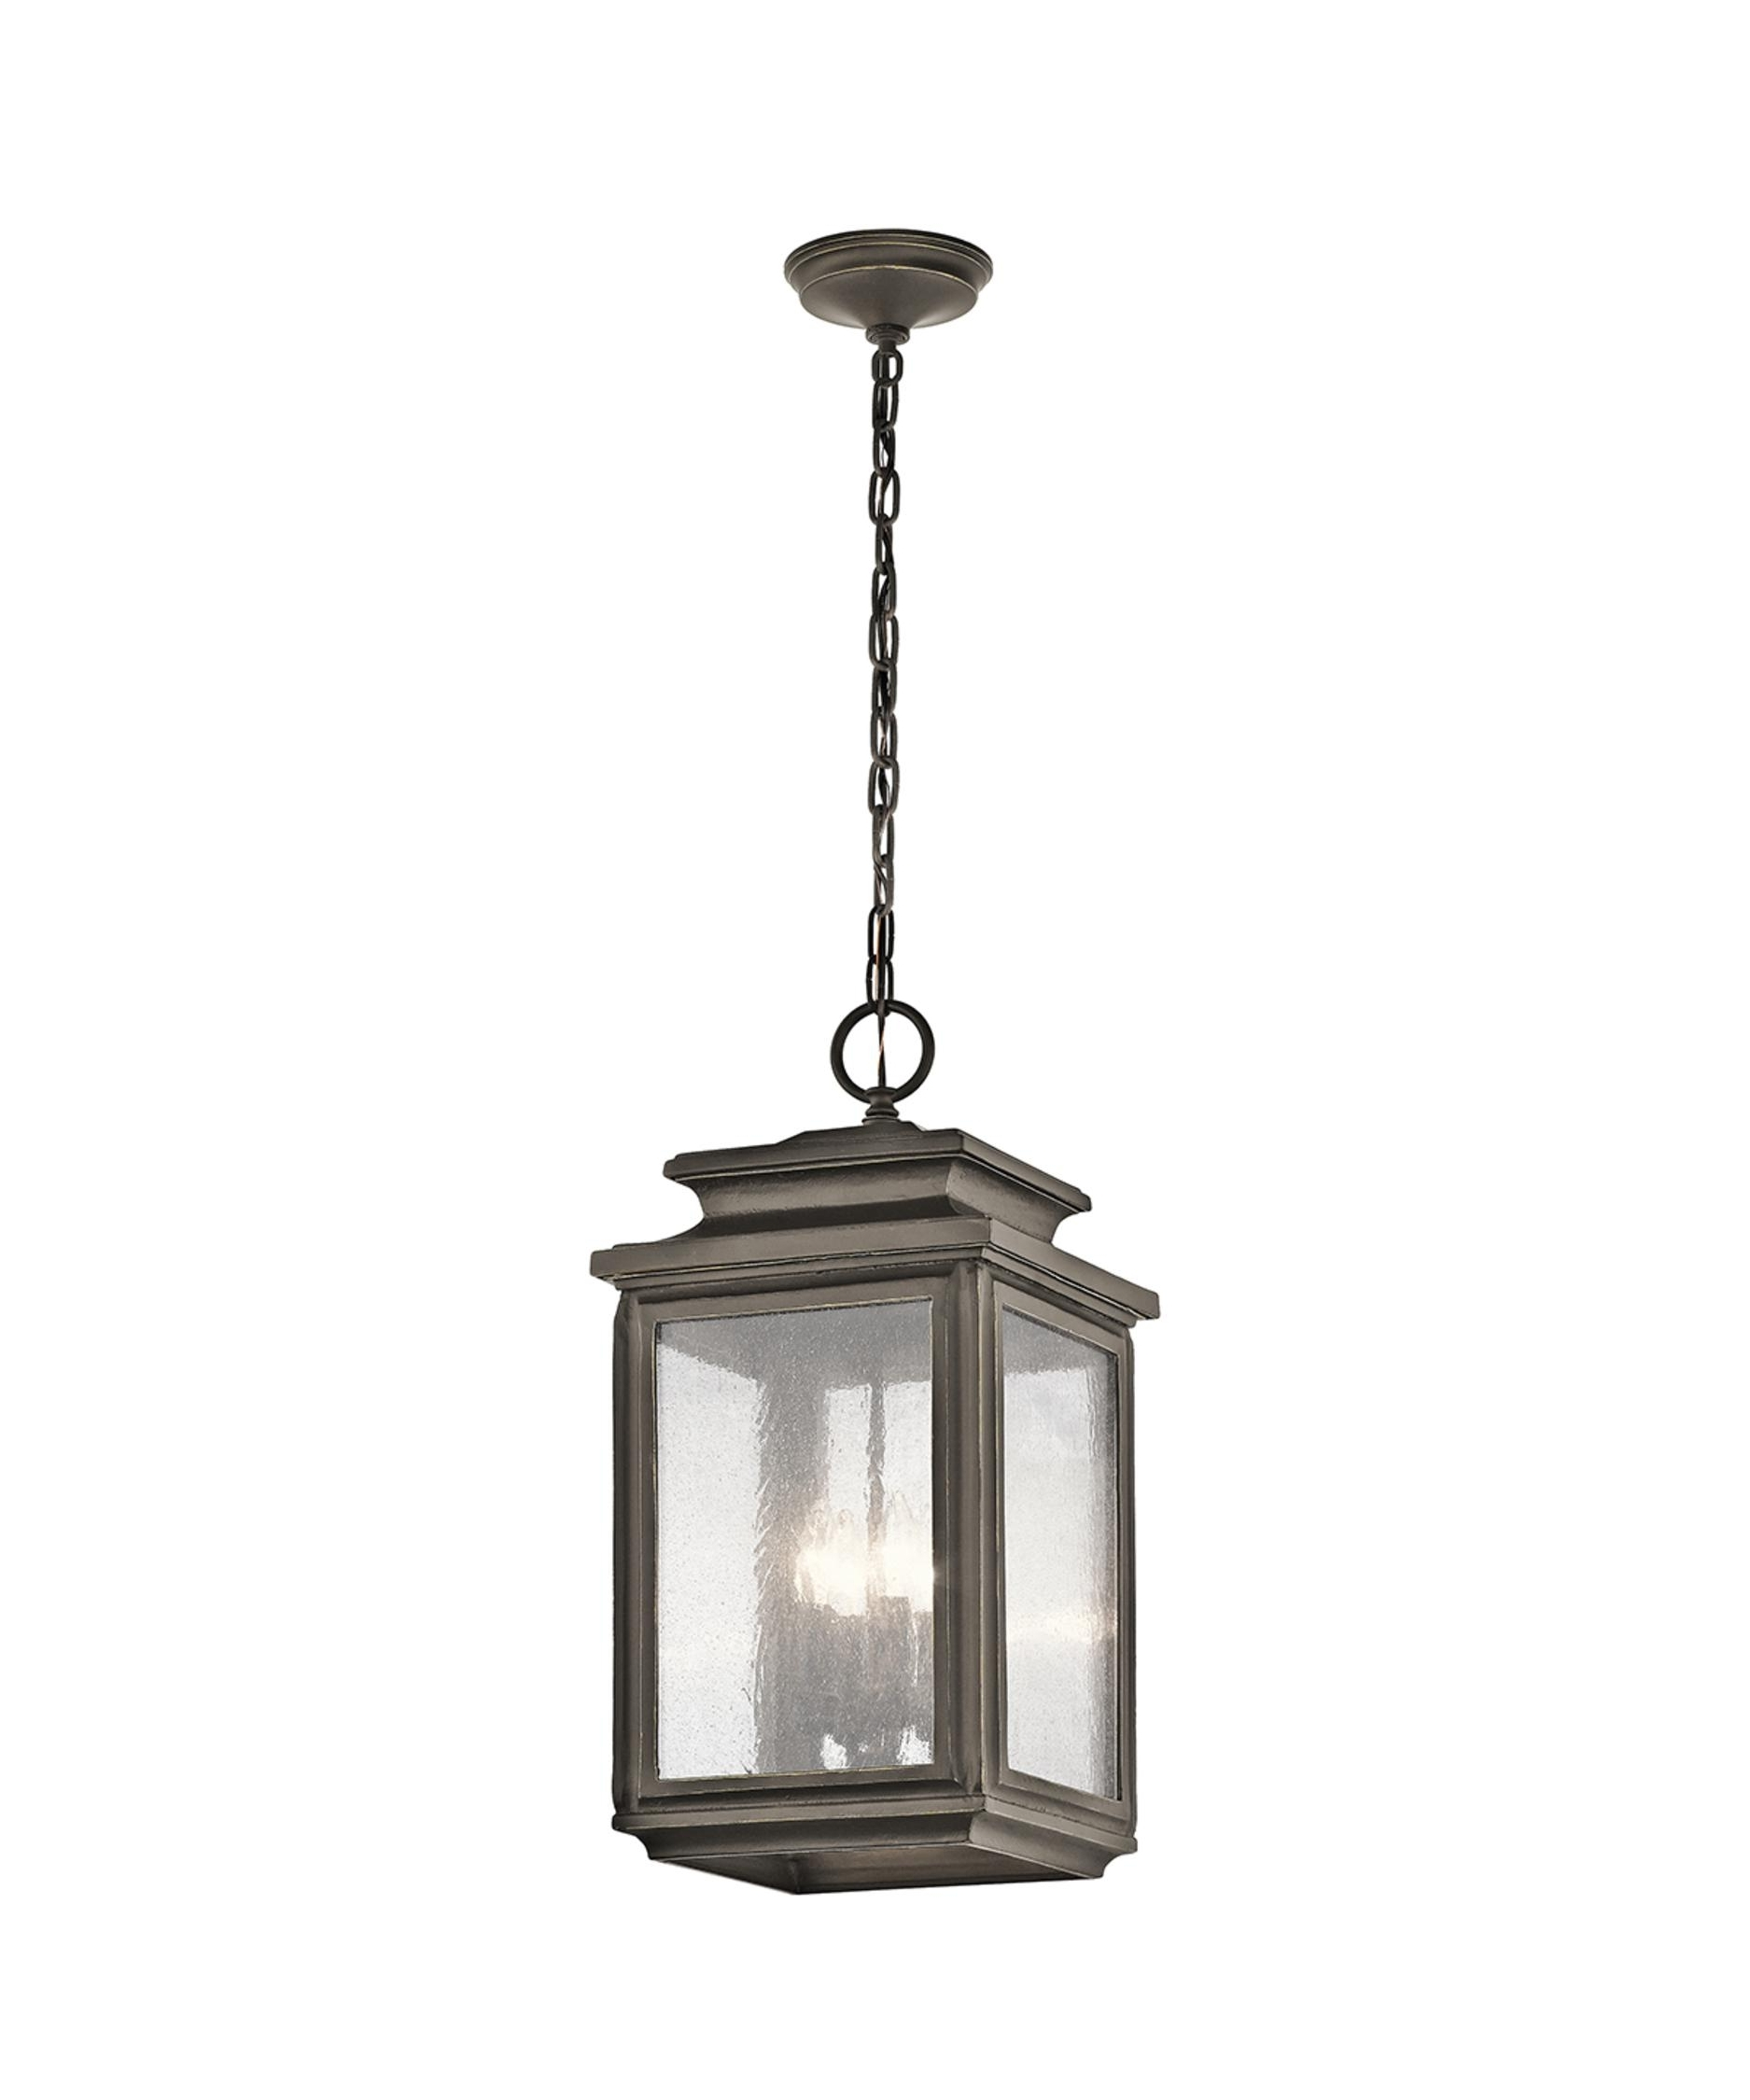 Plug In Outdoor Lanterns In Latest Kichler 49505 Wiscombe Park 11 Inch Wide 4 Light Outdoor Hanging (View 11 of 20)